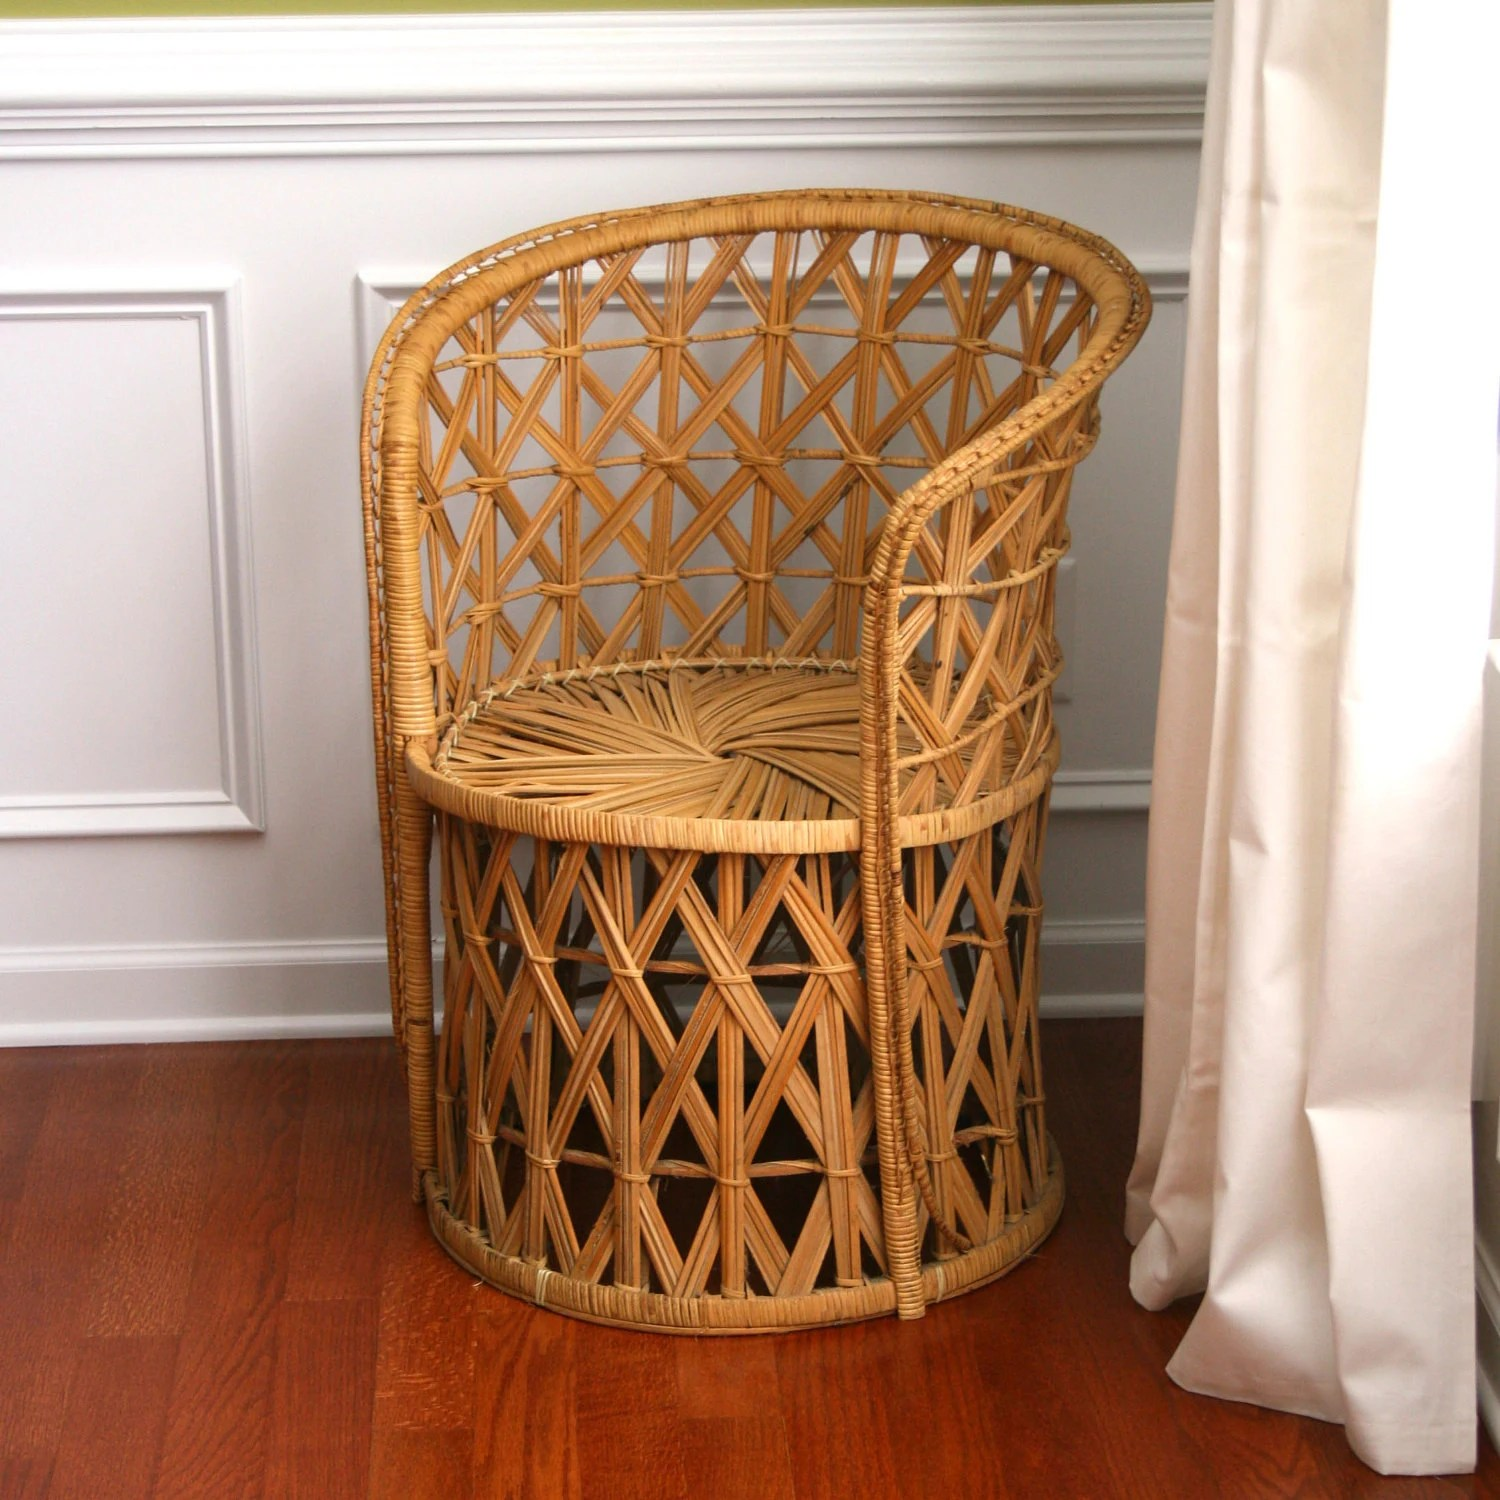 Vintage Rattan Chairs Vintage Rattan Chair Reserved Fall Autumn Home Decor